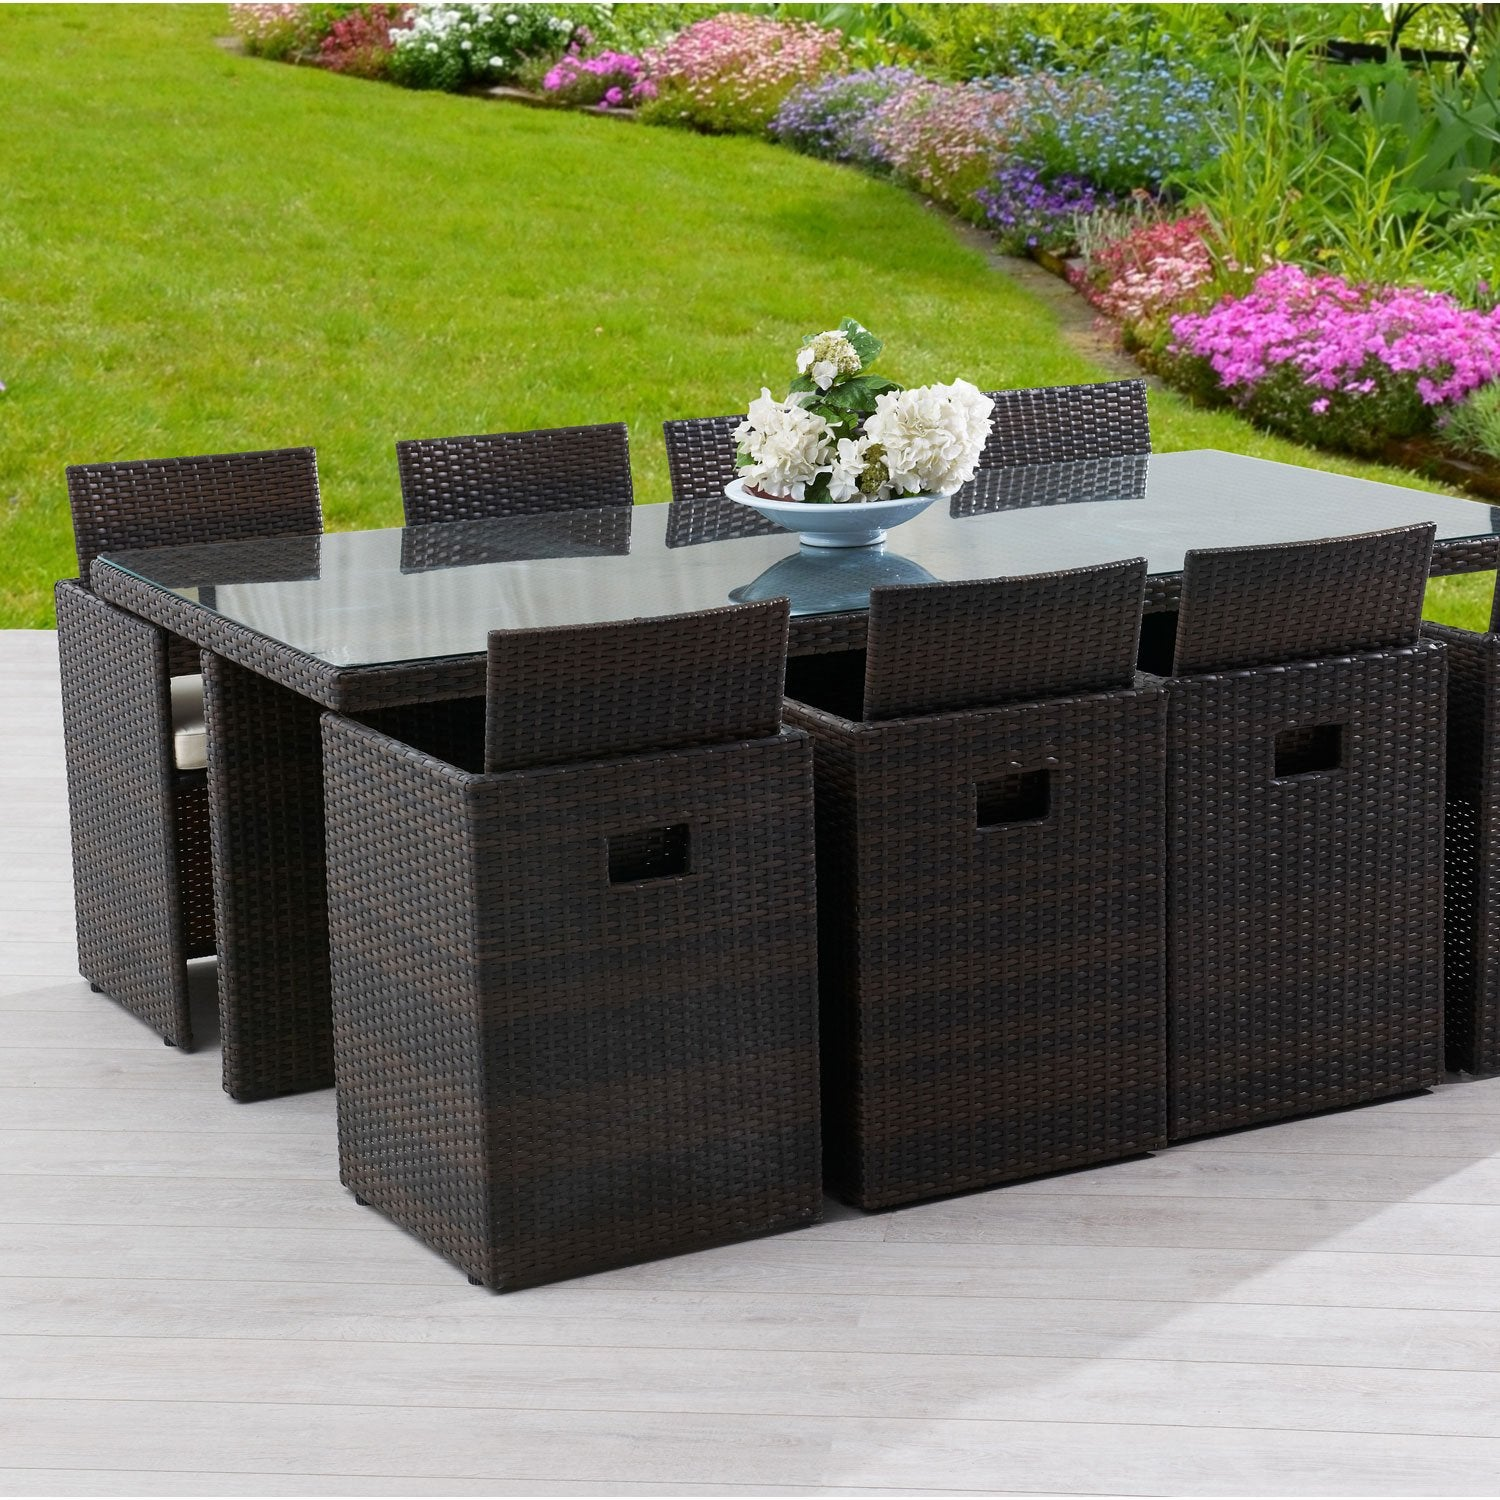 Salon de jardin encastrable r sine tress e marron 1 table - Salon de jardin table haute ...